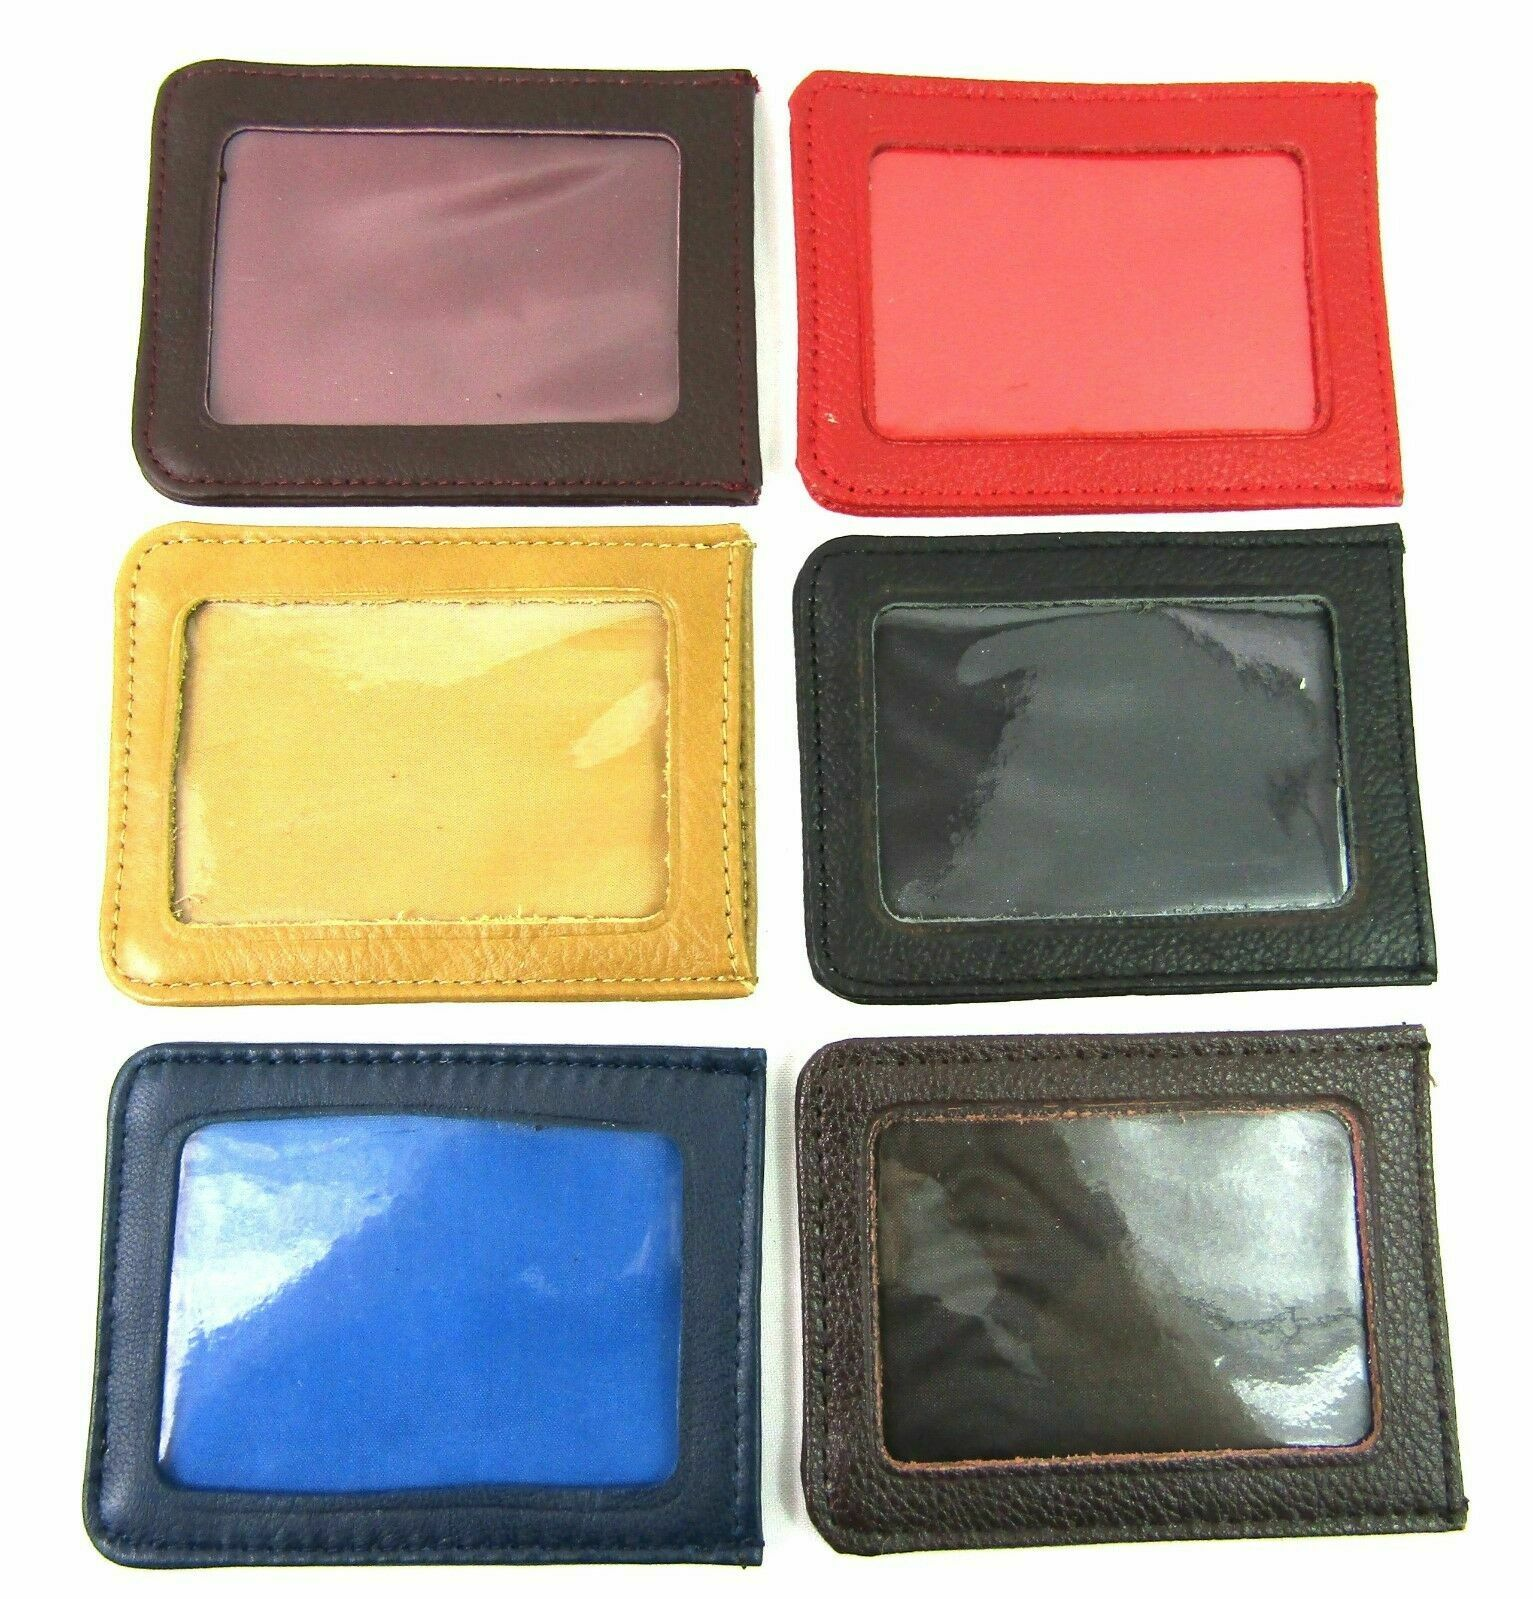 NEW MENS LADIES LEATHER TRAVEL/ BUS PASS/ ID CREDIT CARD HOLDER PASS